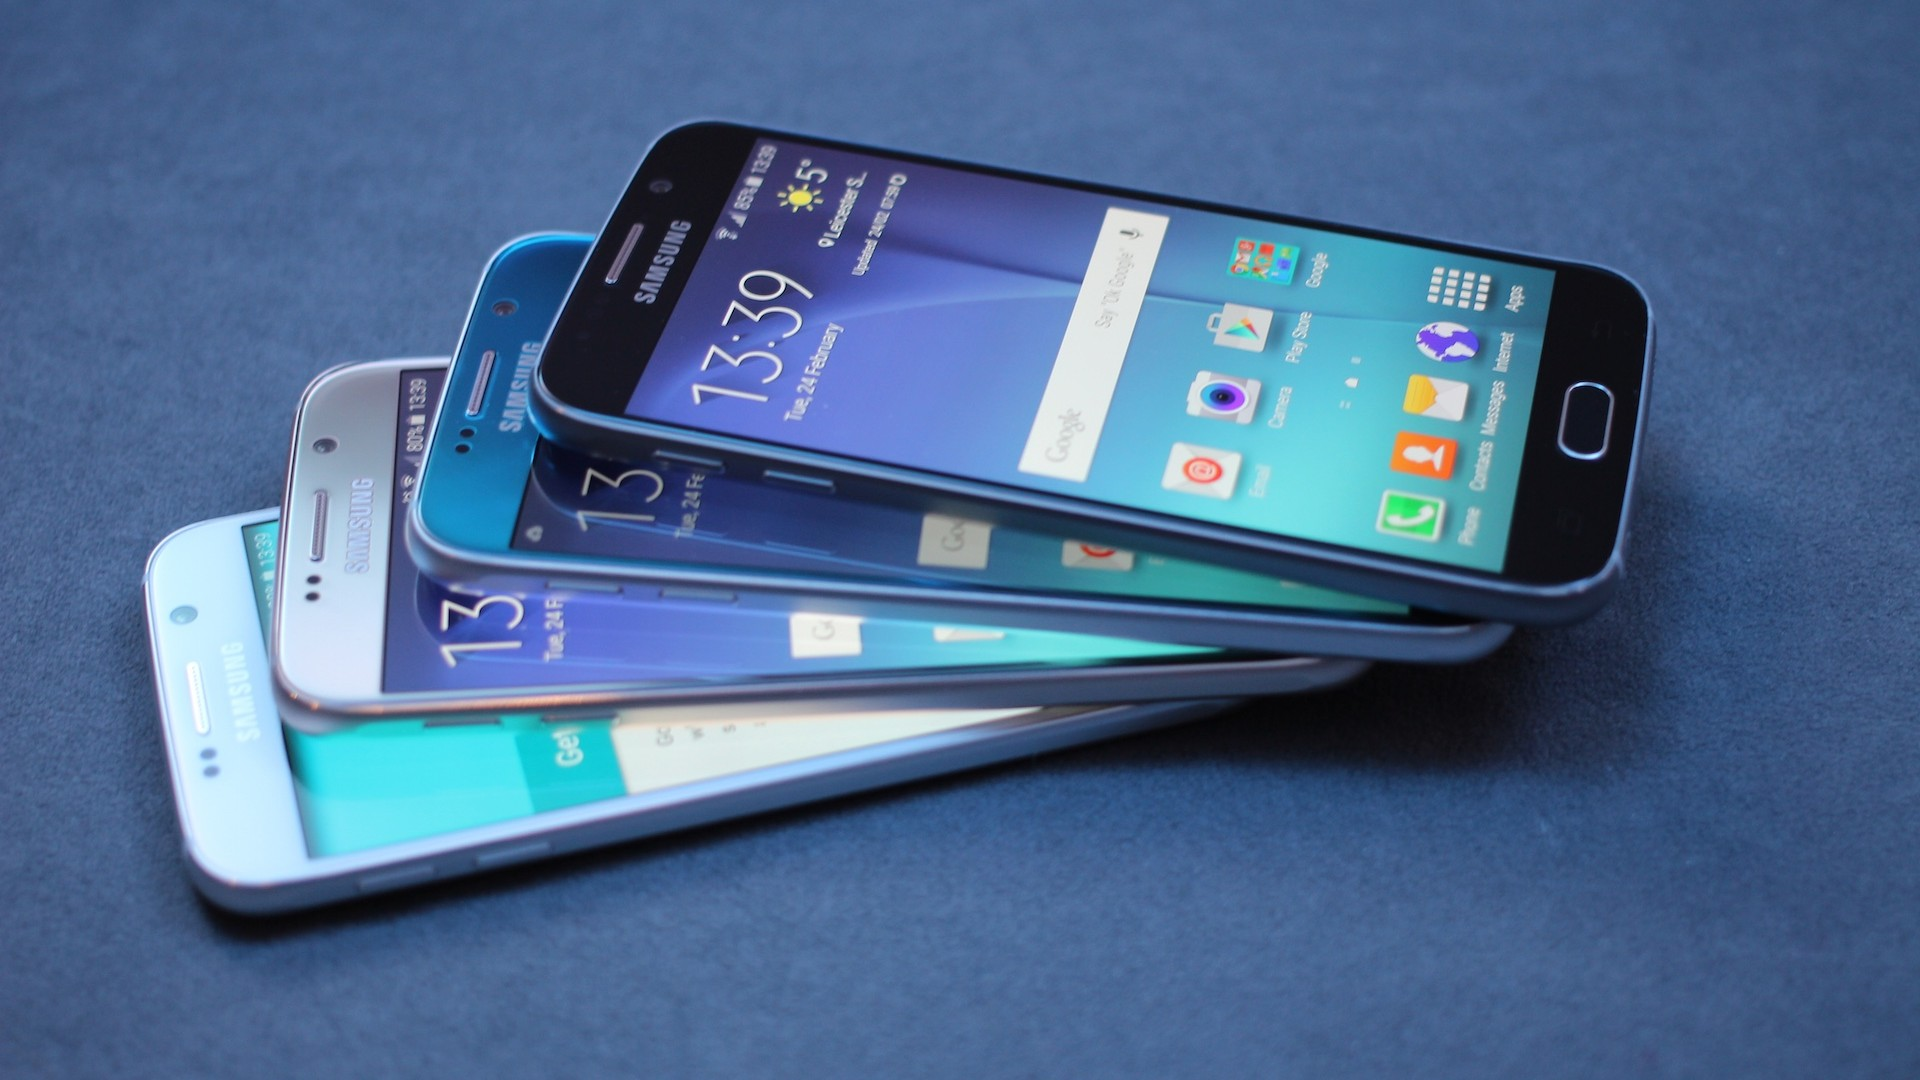 The iPhone 6S Isn't Even Out Yet And Samsung Is Already Scared